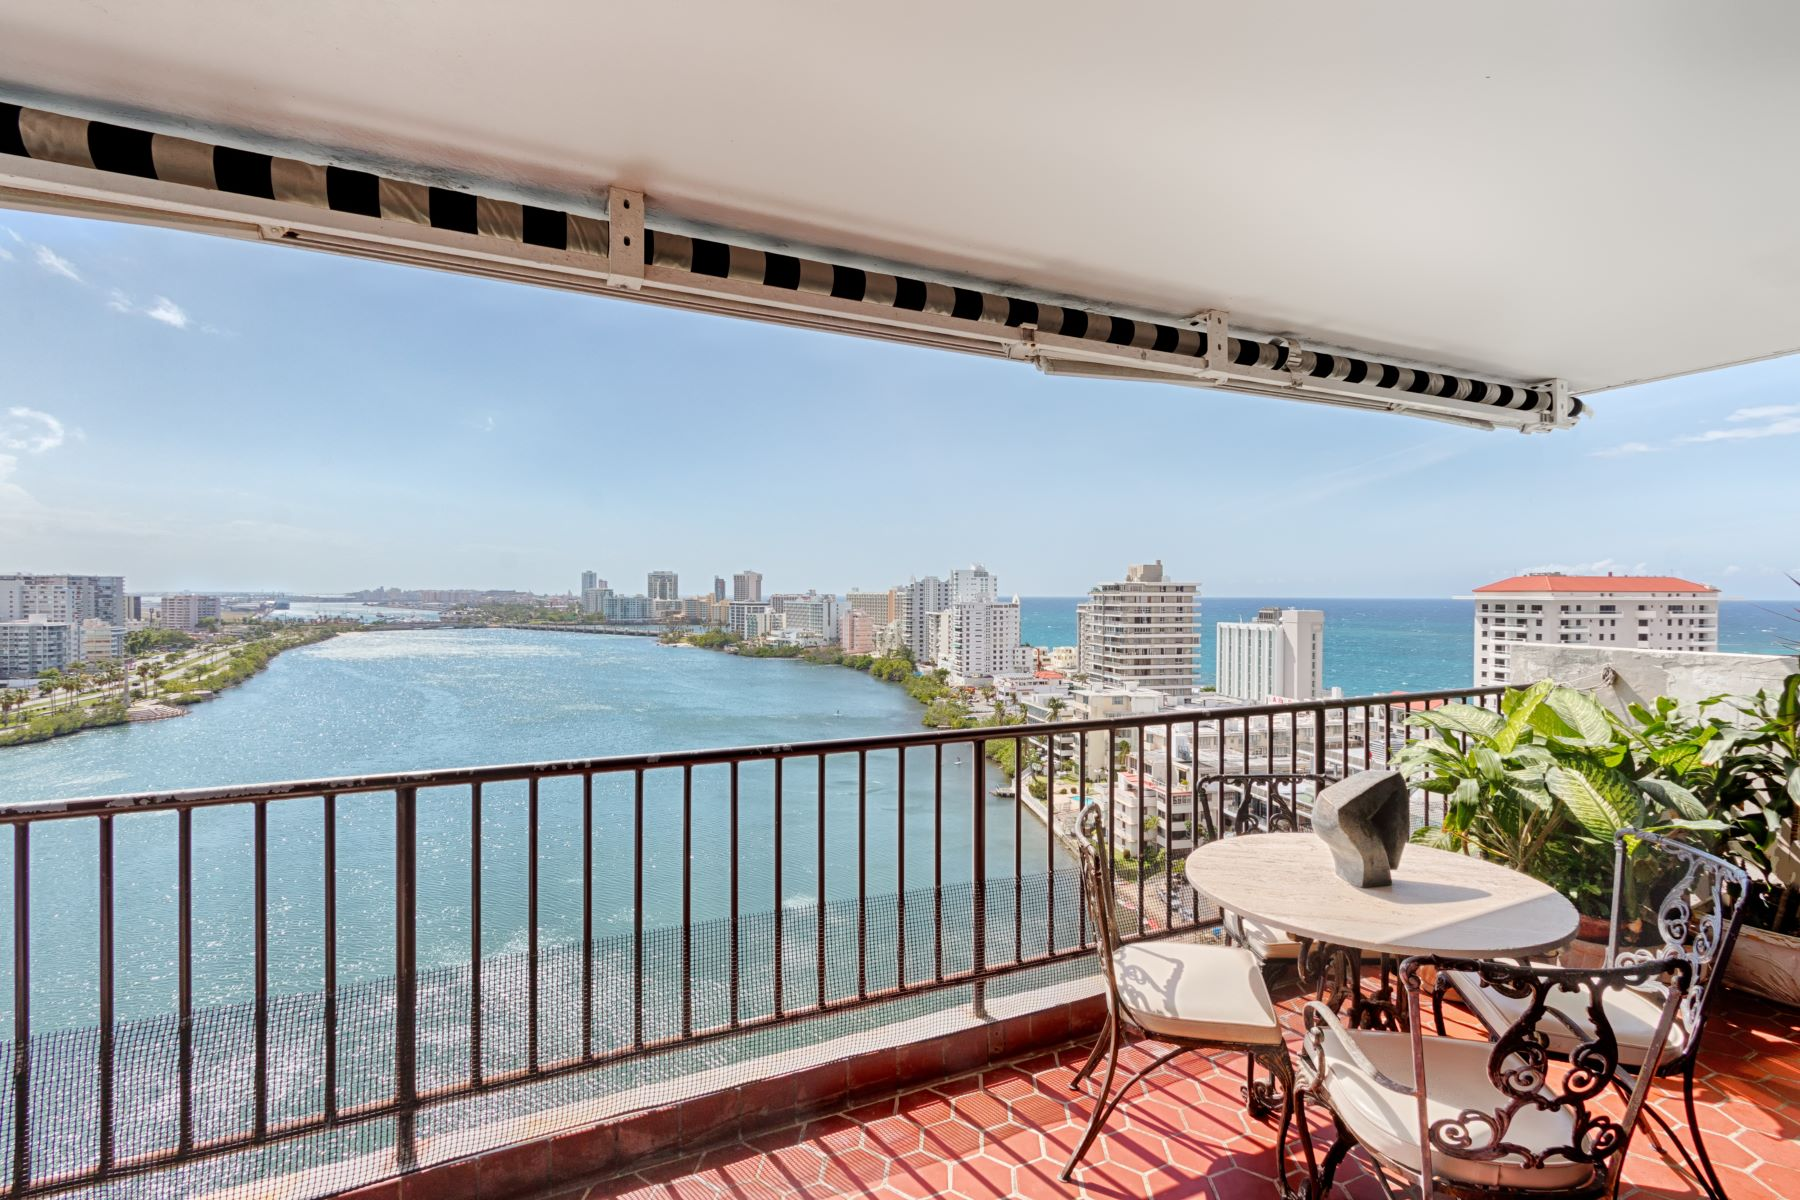 Apartment for Sale at Duplex PH in the Heart of Condado Beach 6 Calle Joffre PHA San Juan, Puerto Rico 00907 Puerto Rico